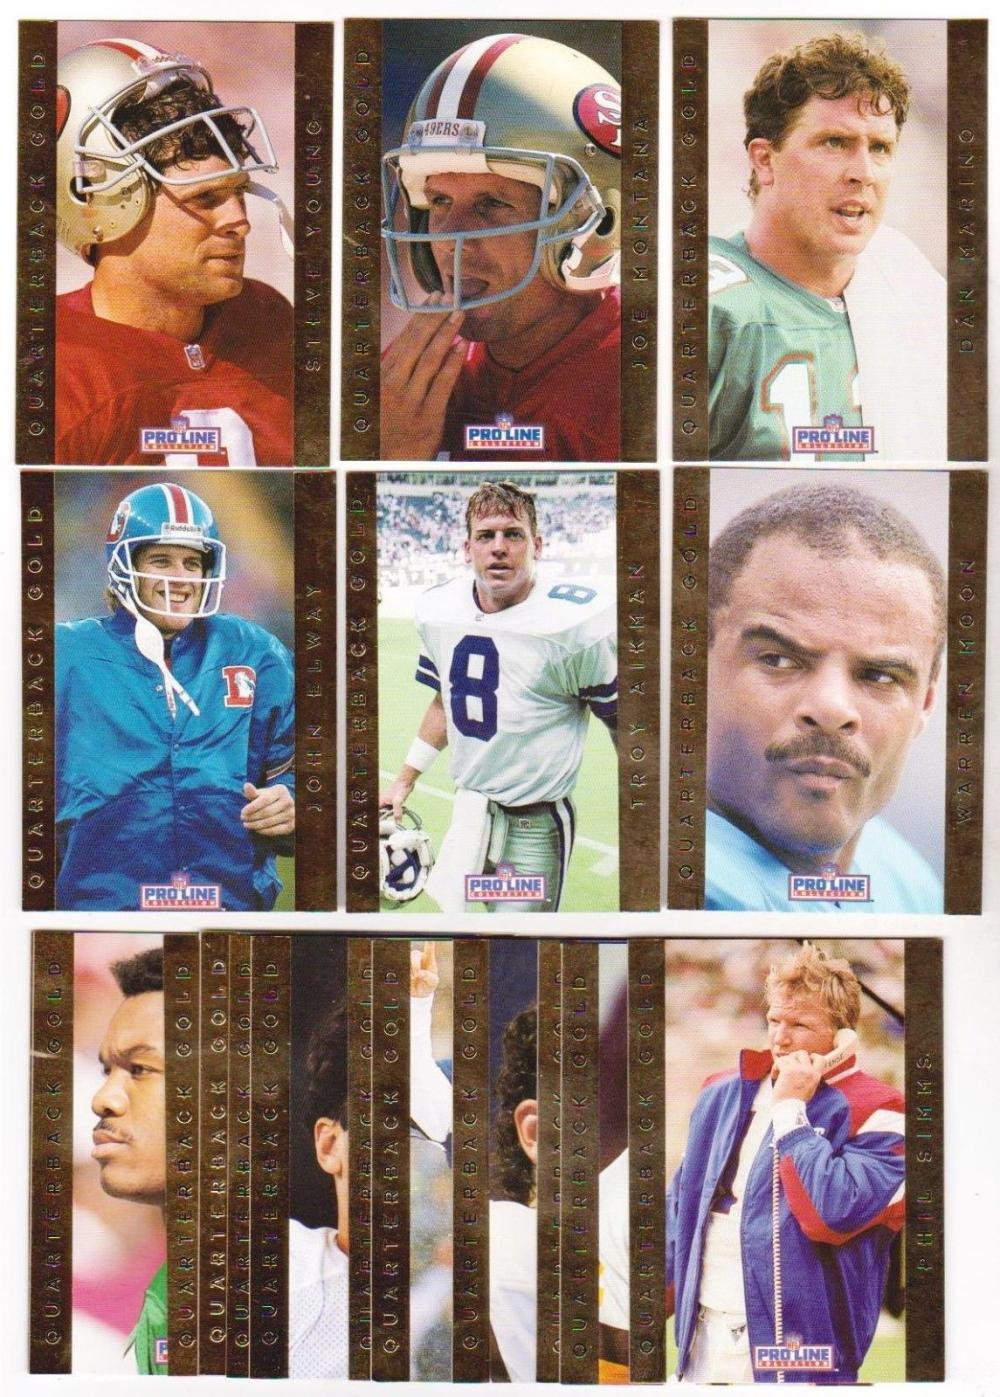 1992 Pro Line Quarterback Gold 18 Card Insert Set W/ Joe Montana, Dan Marino + More